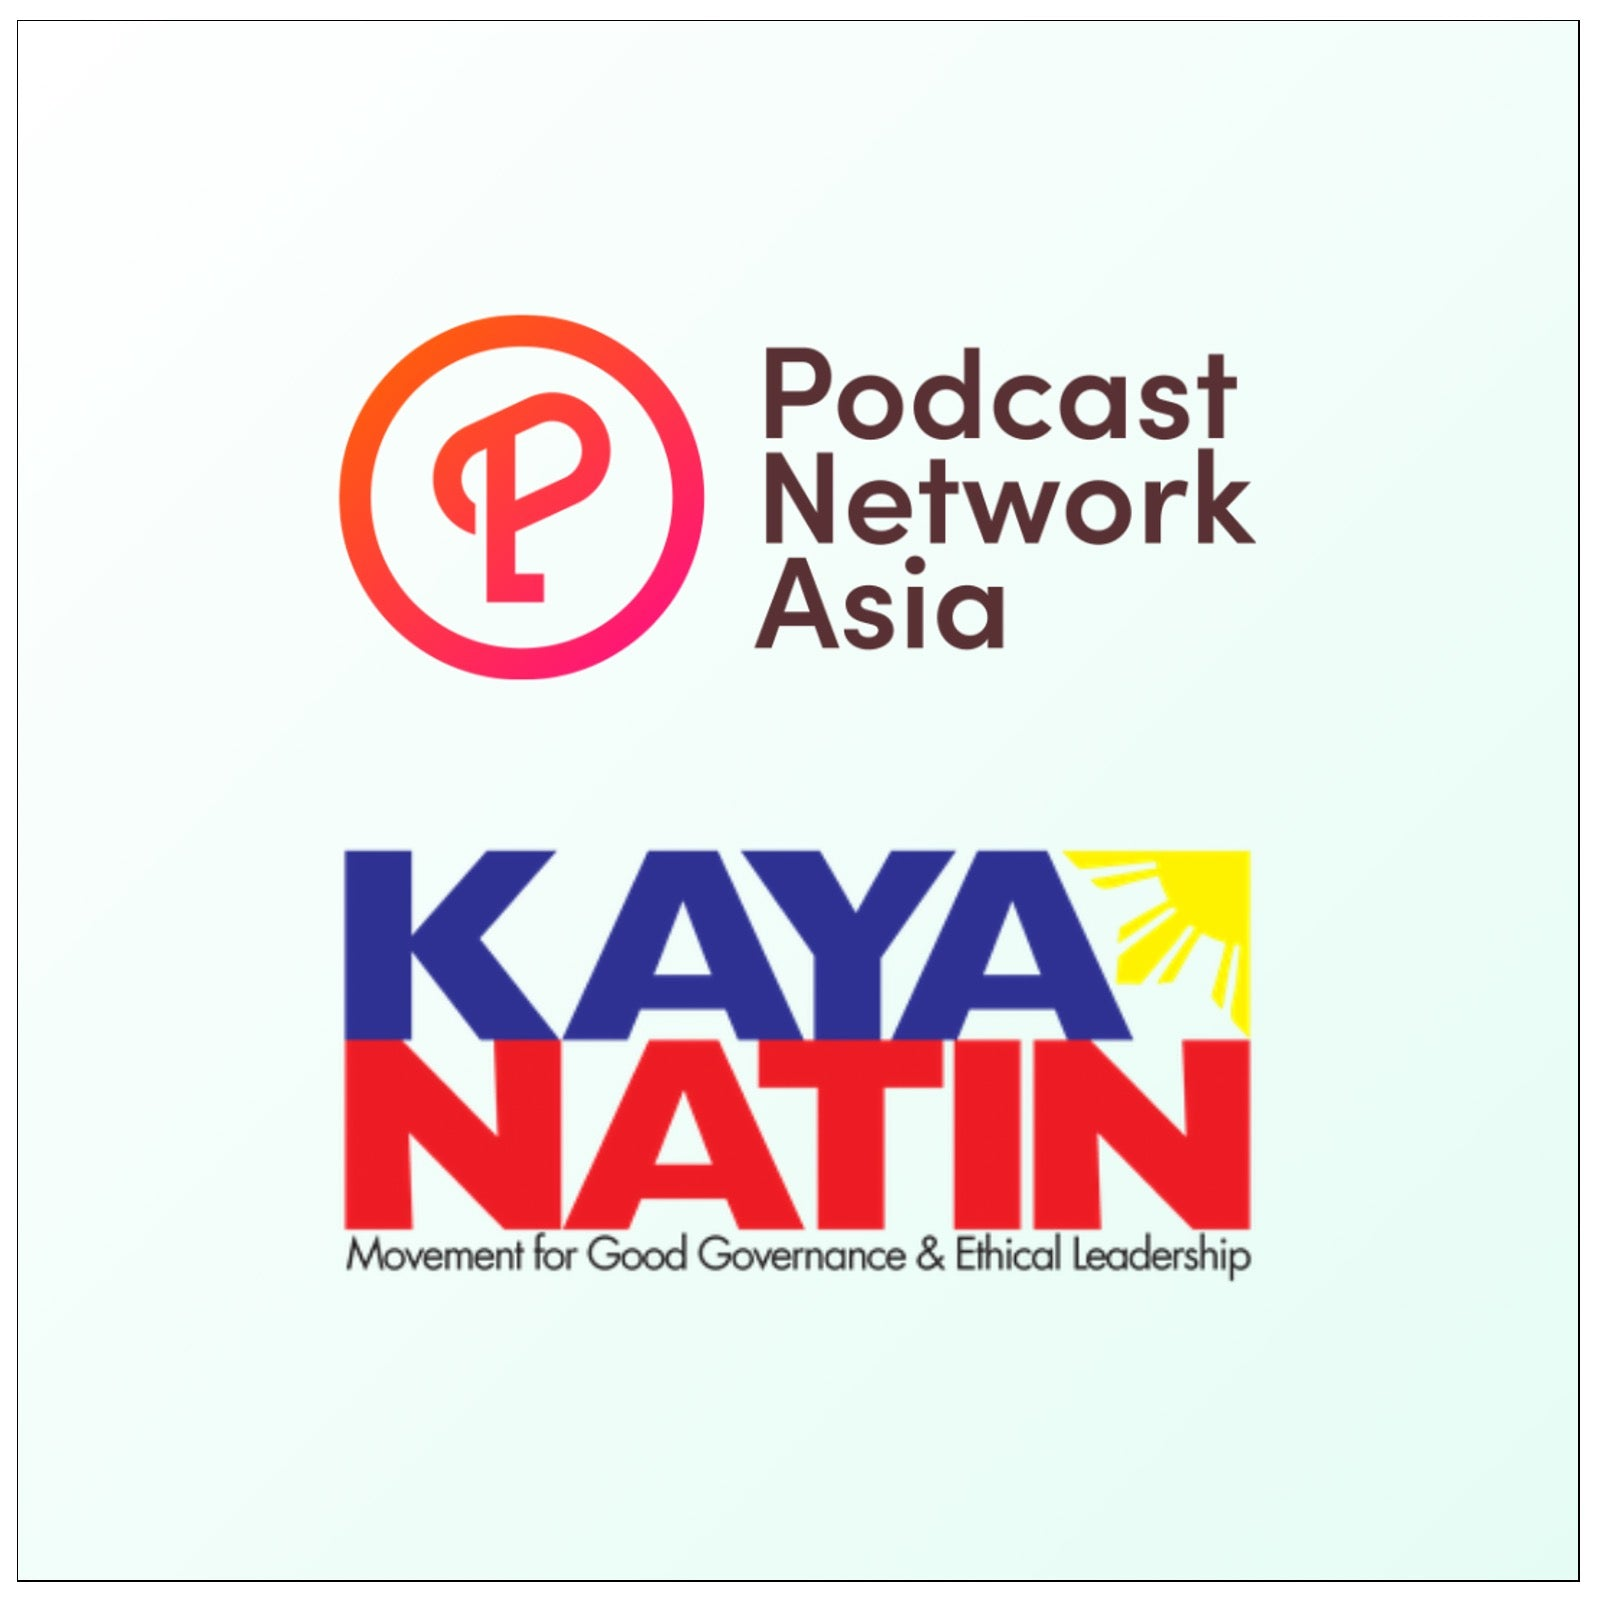 PODCAST NETWORK ASIA for Typhoon relief